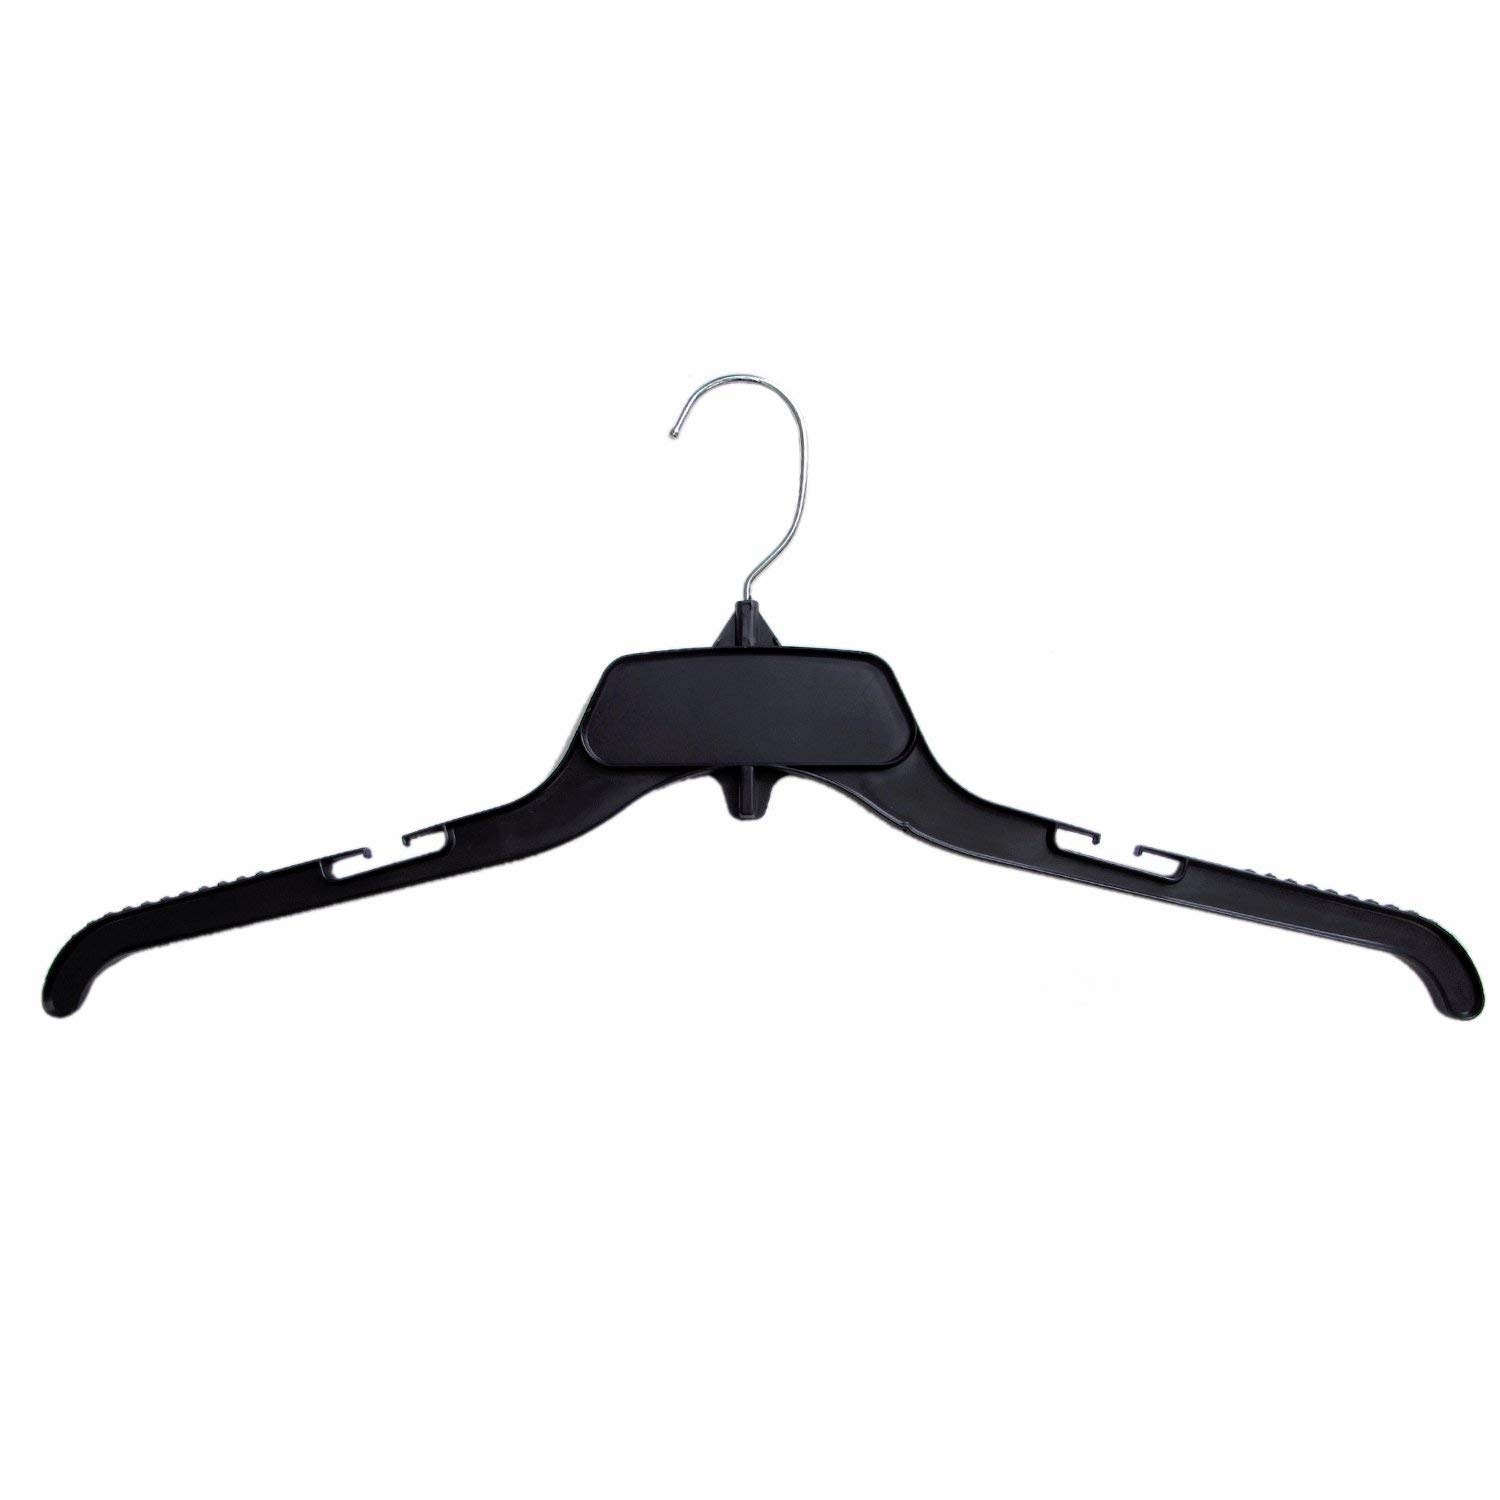 Hang On Shirt Hangers Recycled Plastic With Notches, Black, 19 Inch Pack Of 25 by Hang On